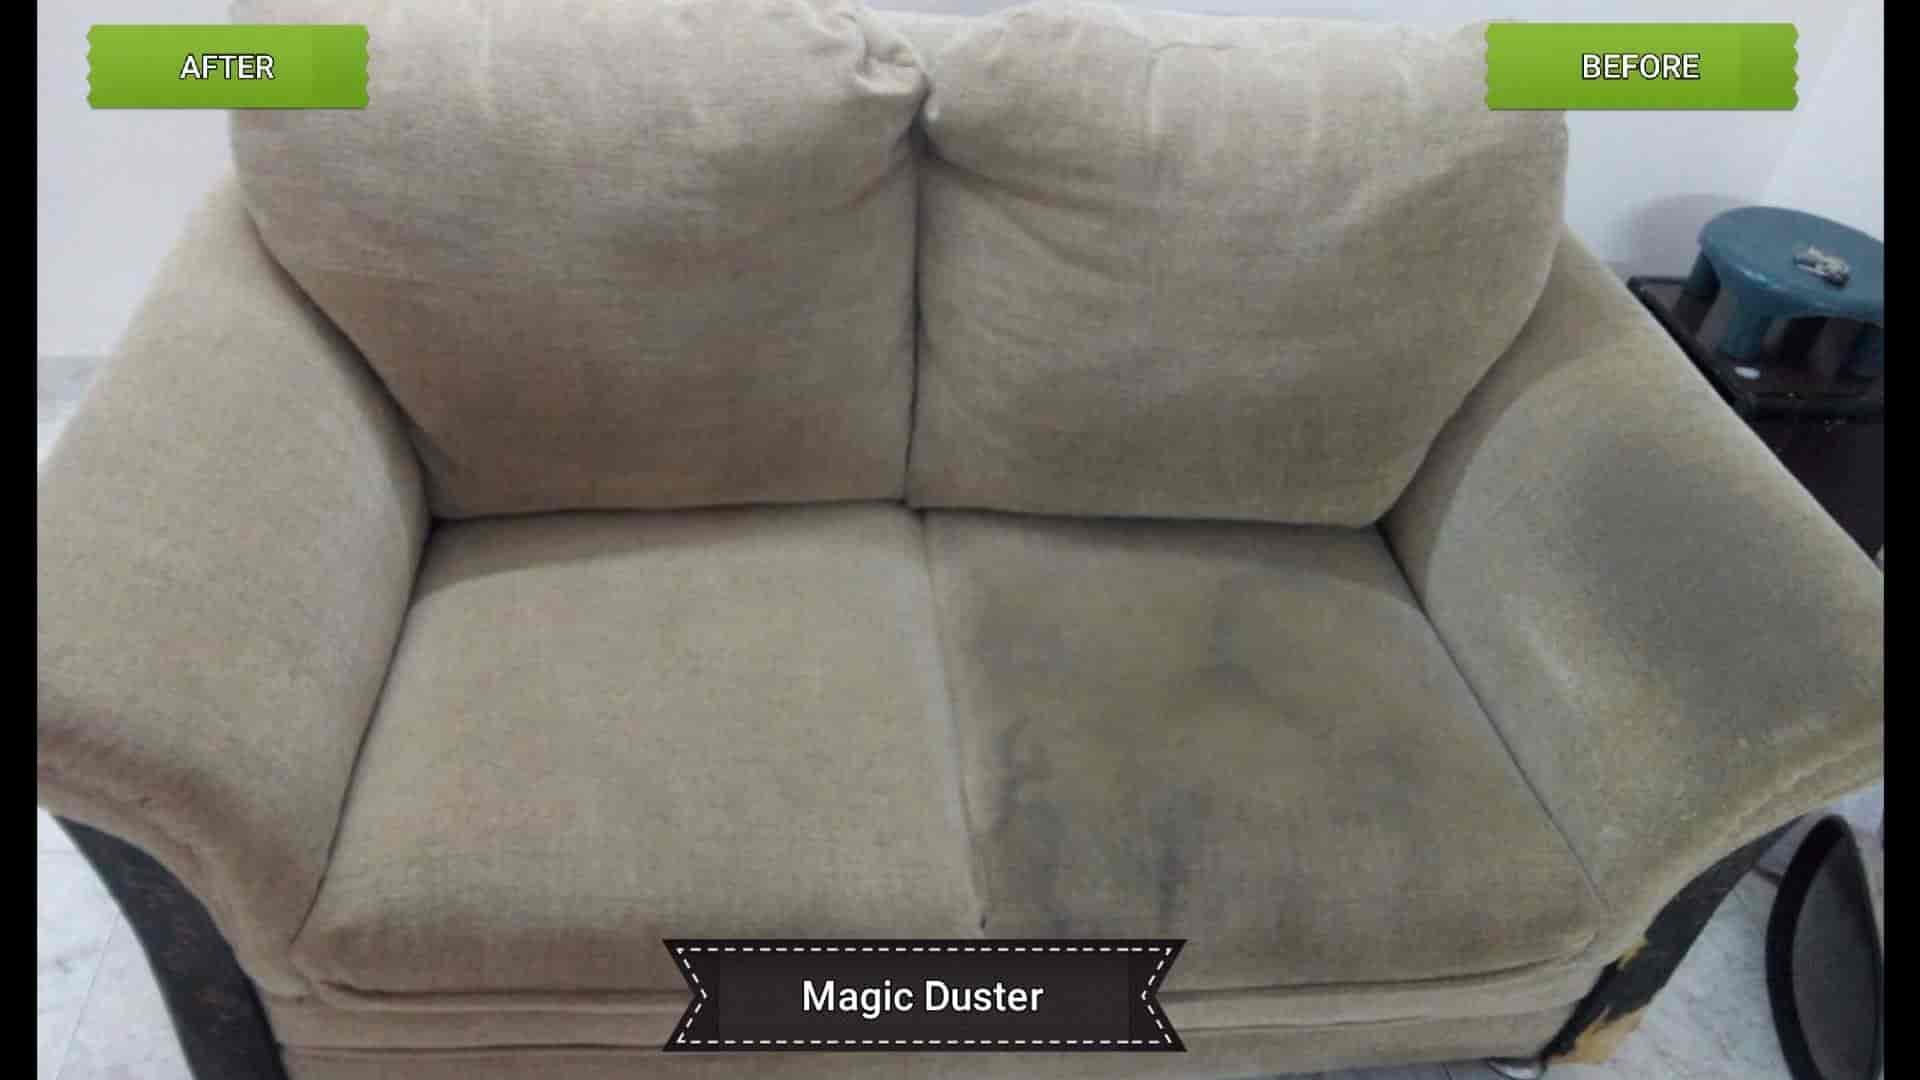 Peachy My Sofa Cleaner Magic Duster Vastrapur Sofa Cleaning Home Interior And Landscaping Ologienasavecom